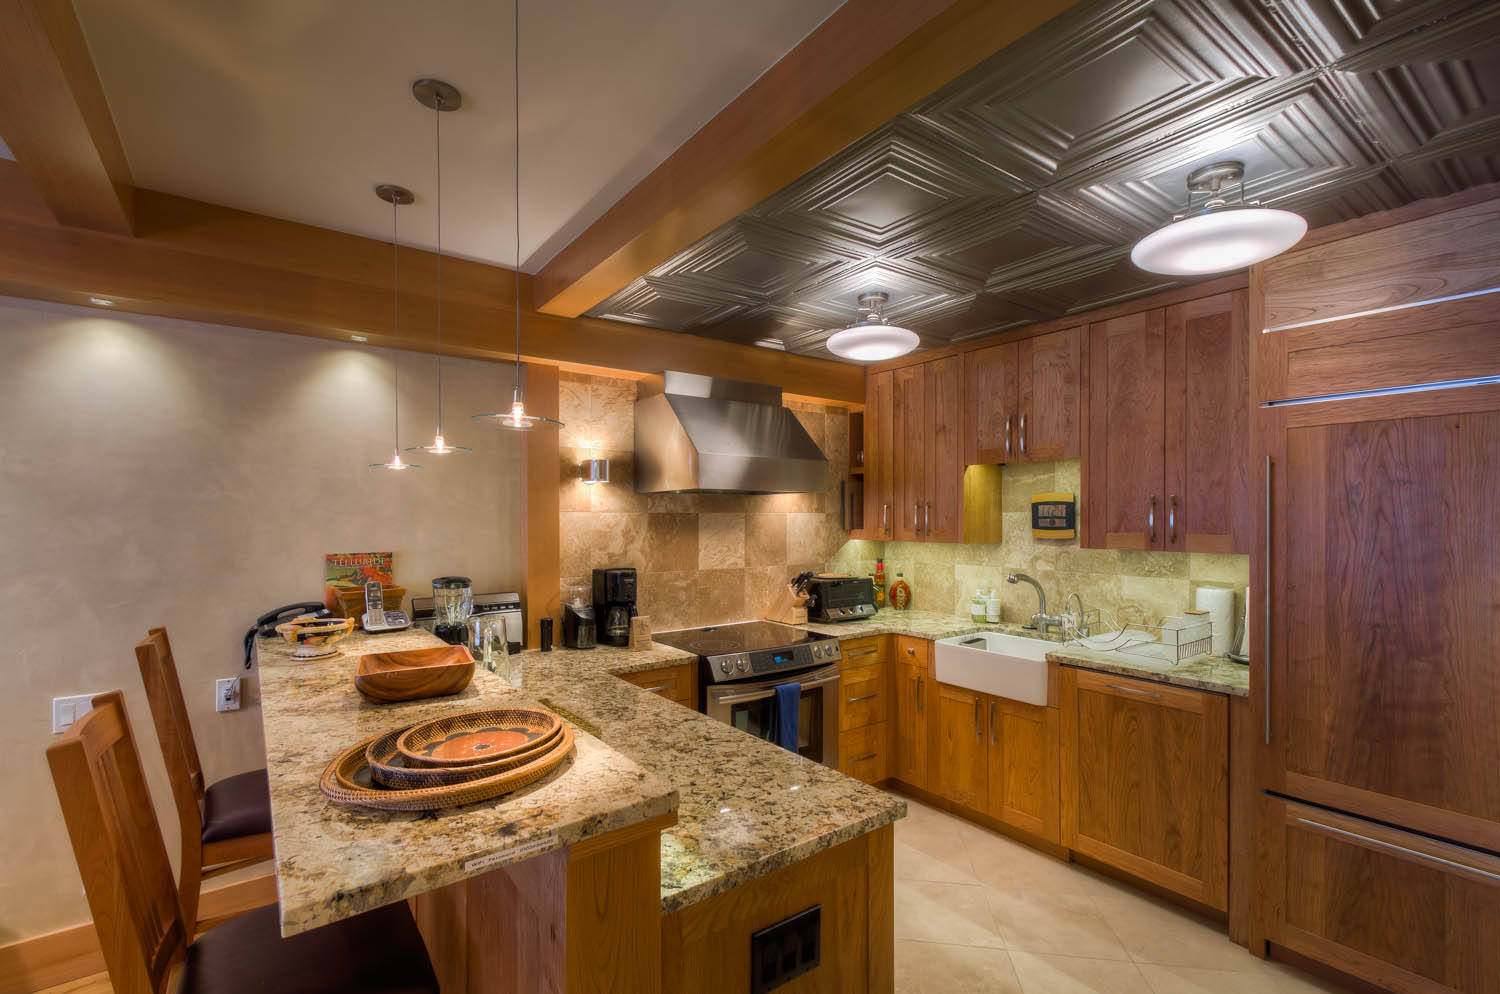 Kitchen with Breakfast Bar, Refrigerator, and Coffee Maker